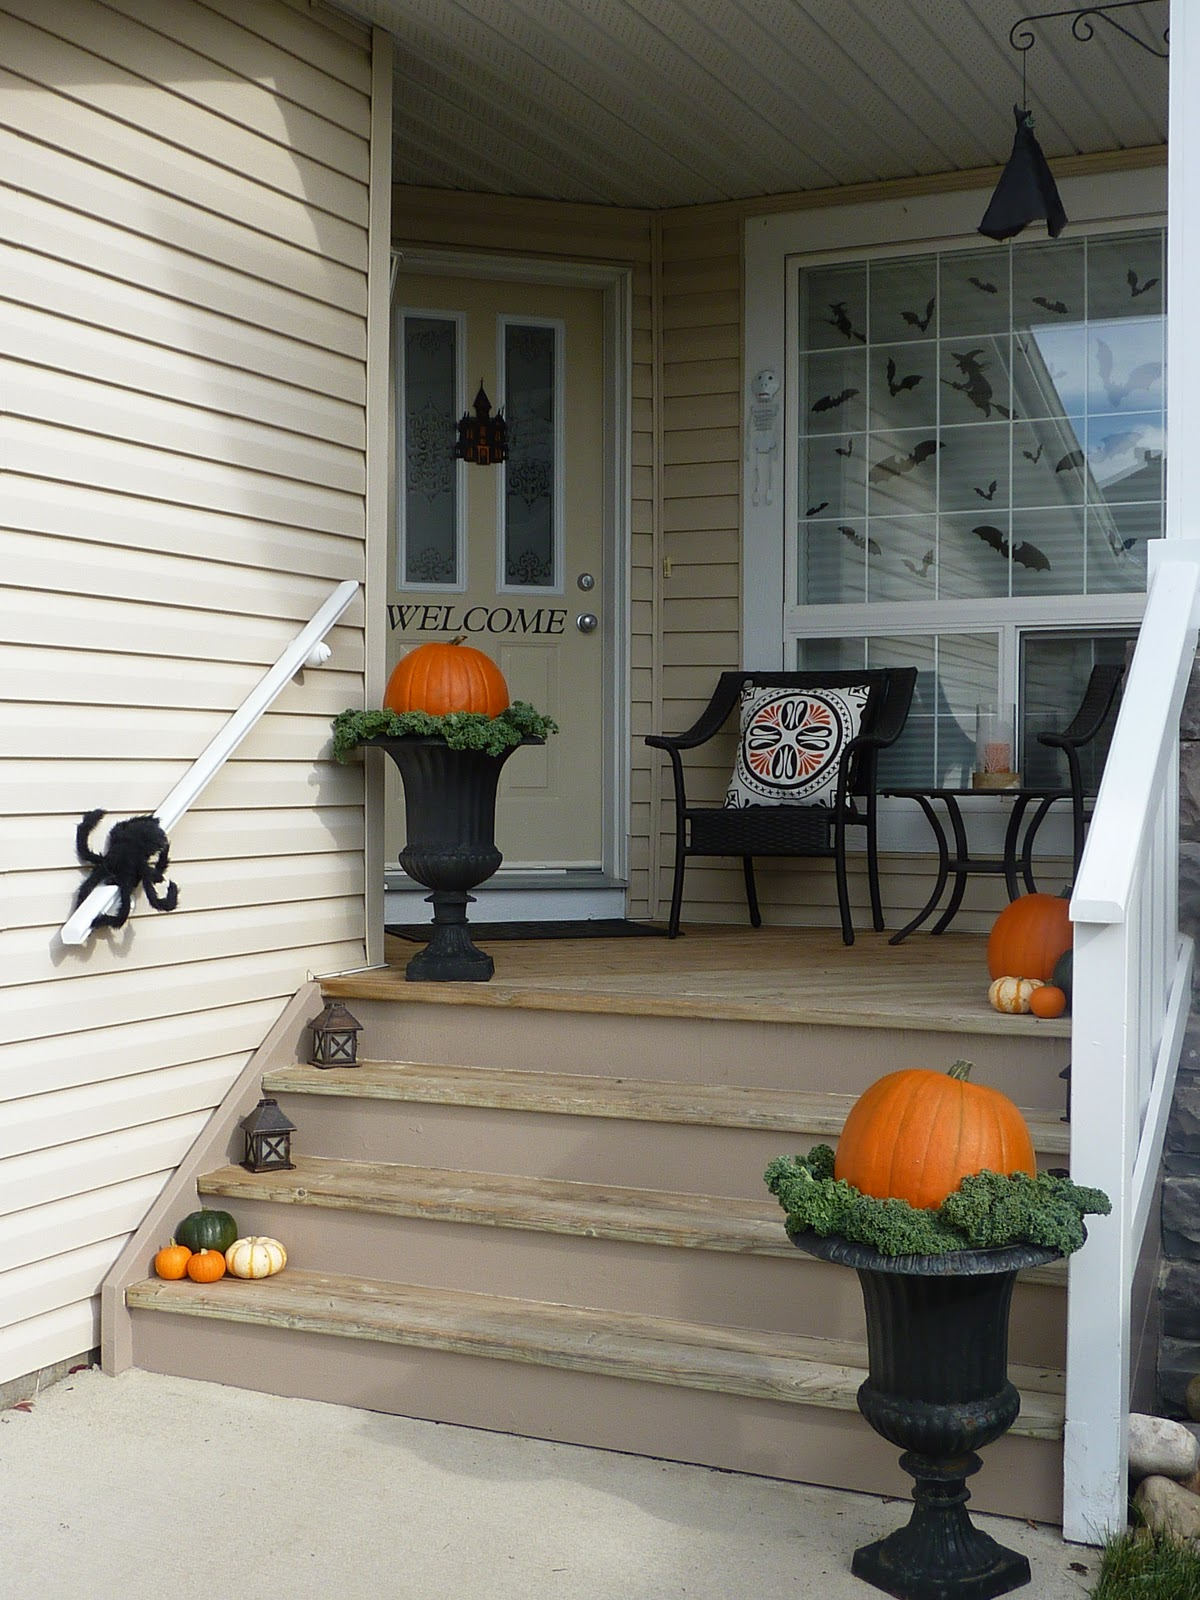 My Crafty Days: Fall/ Halloween Porch Decoration